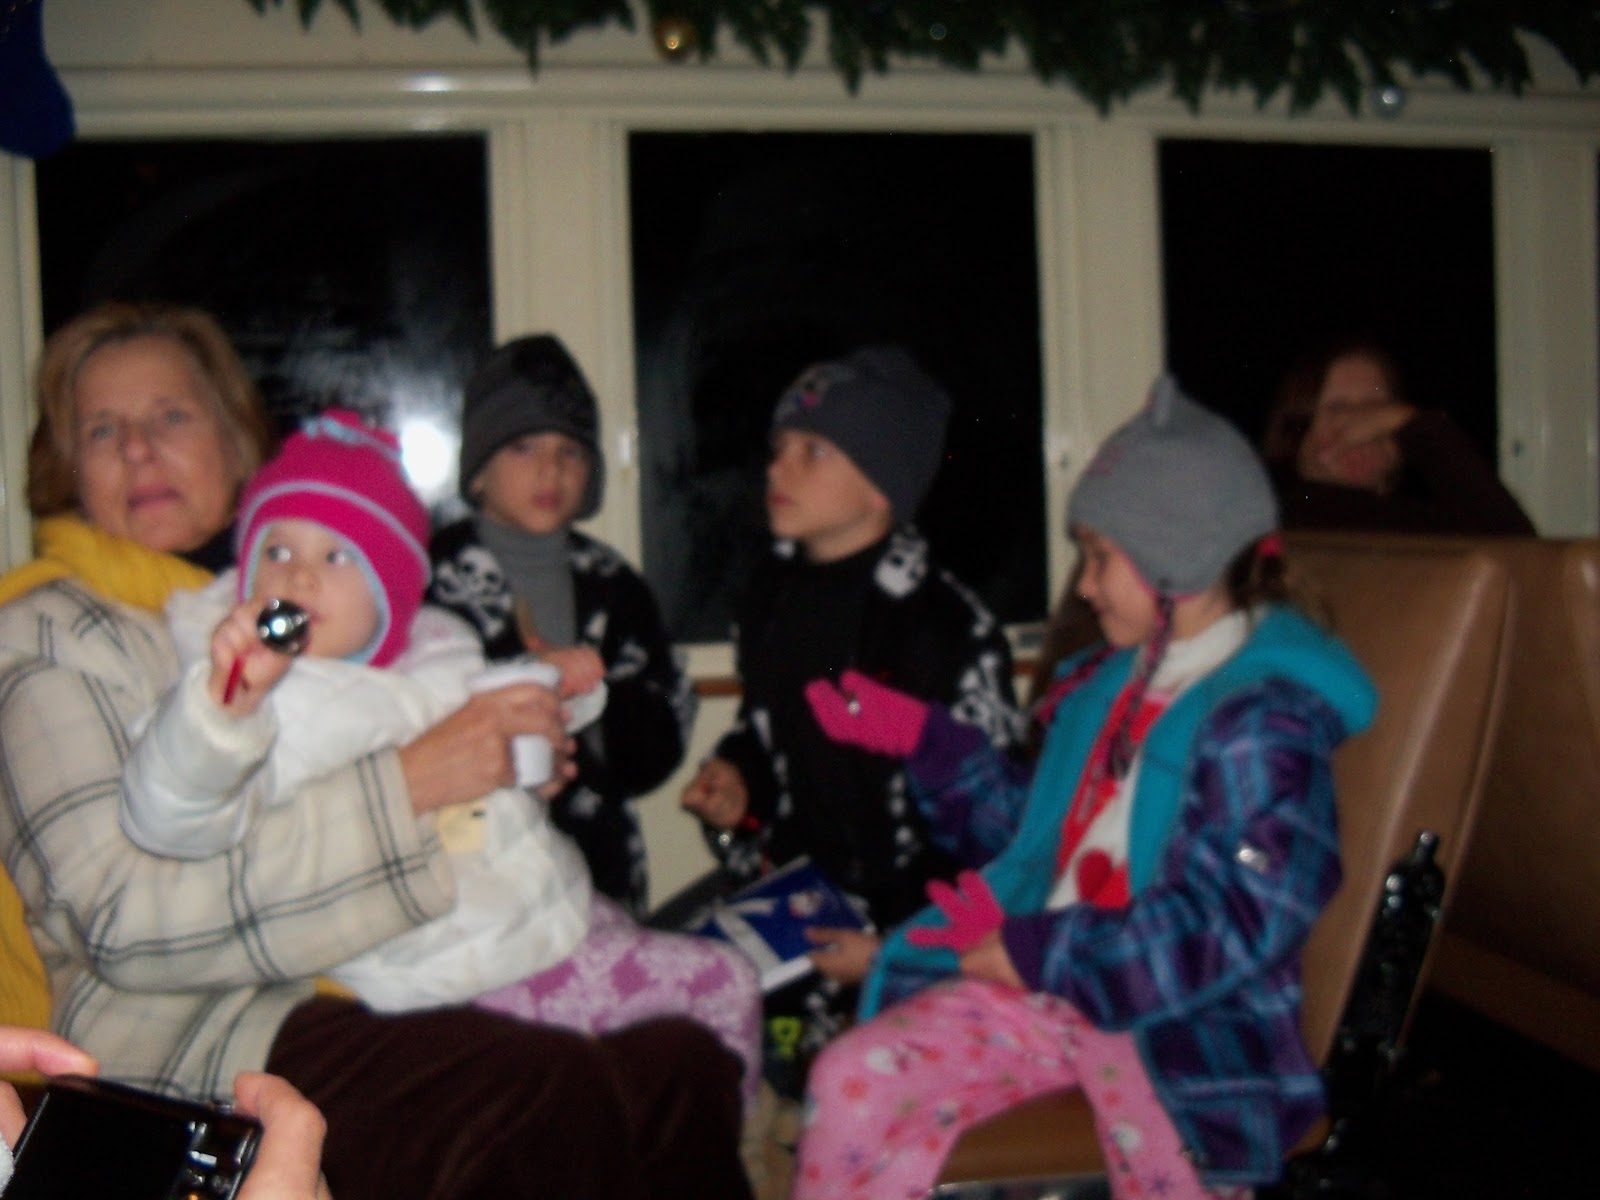 Polar Express Christmas Train 2011 - 115_1009.JPG